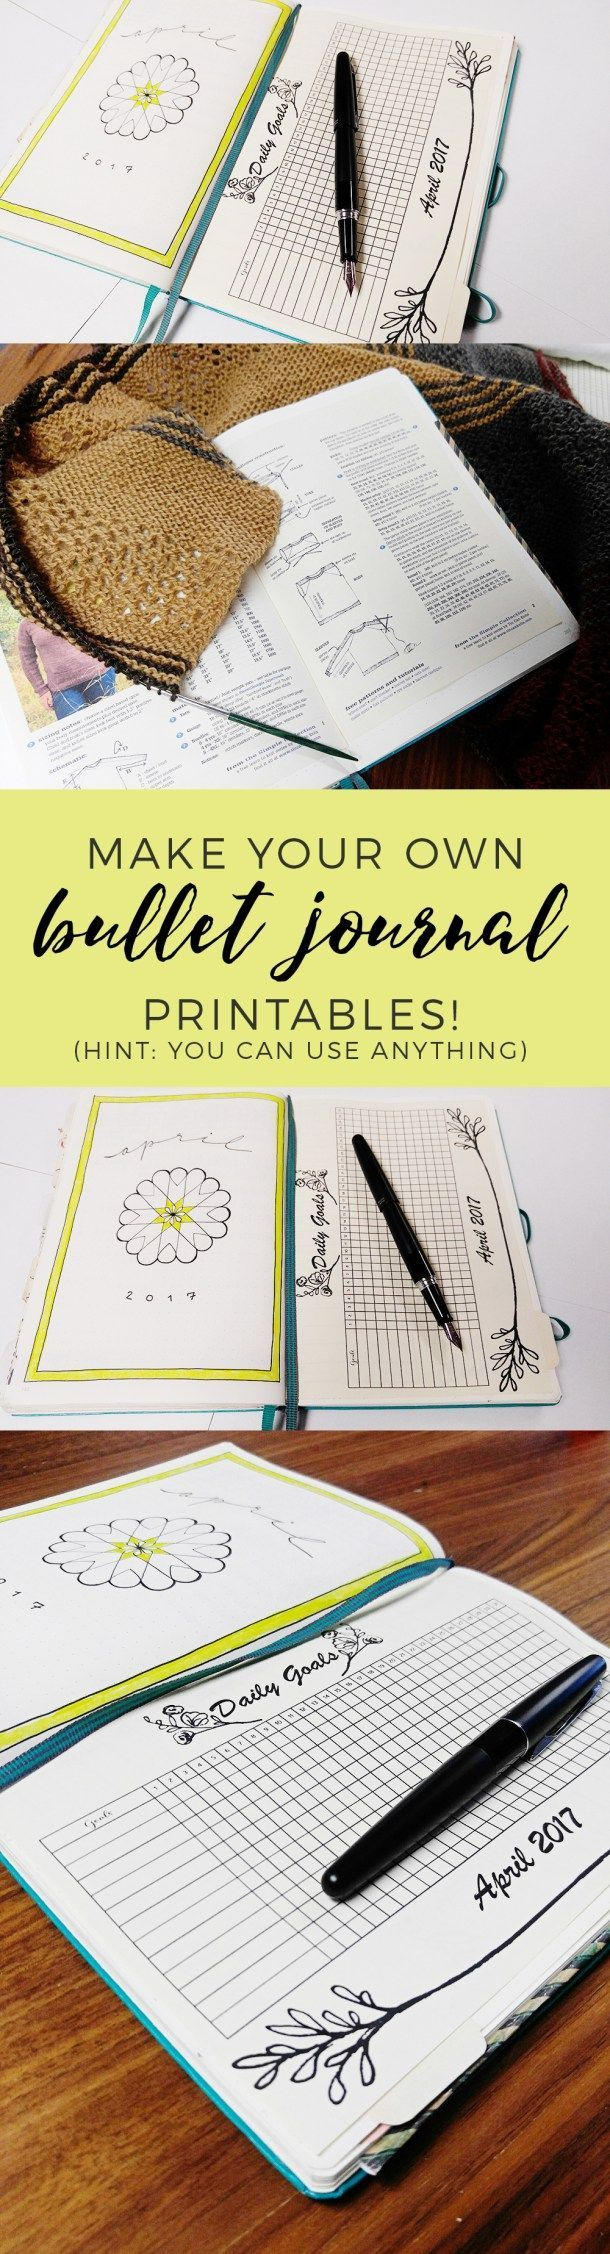 Create your own bullet journal printables using ANYTHING you can find online, or make in word. So easy!!!